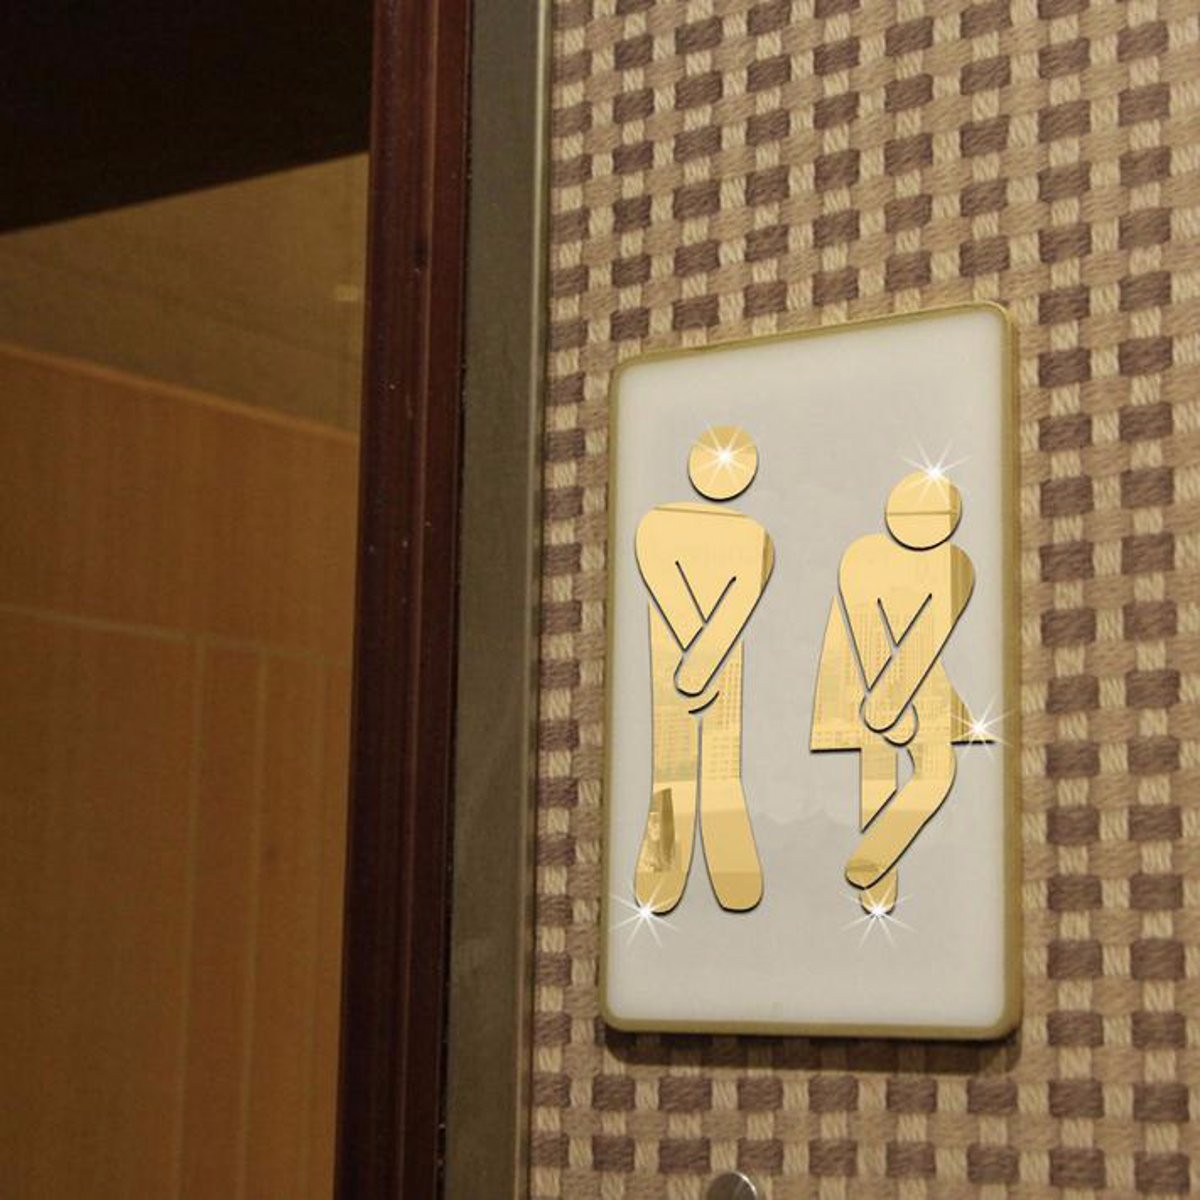 3d toilet wc man women decor removable decal vinyl art wall sticker mirror decor lazada malaysia - Decor wc ...